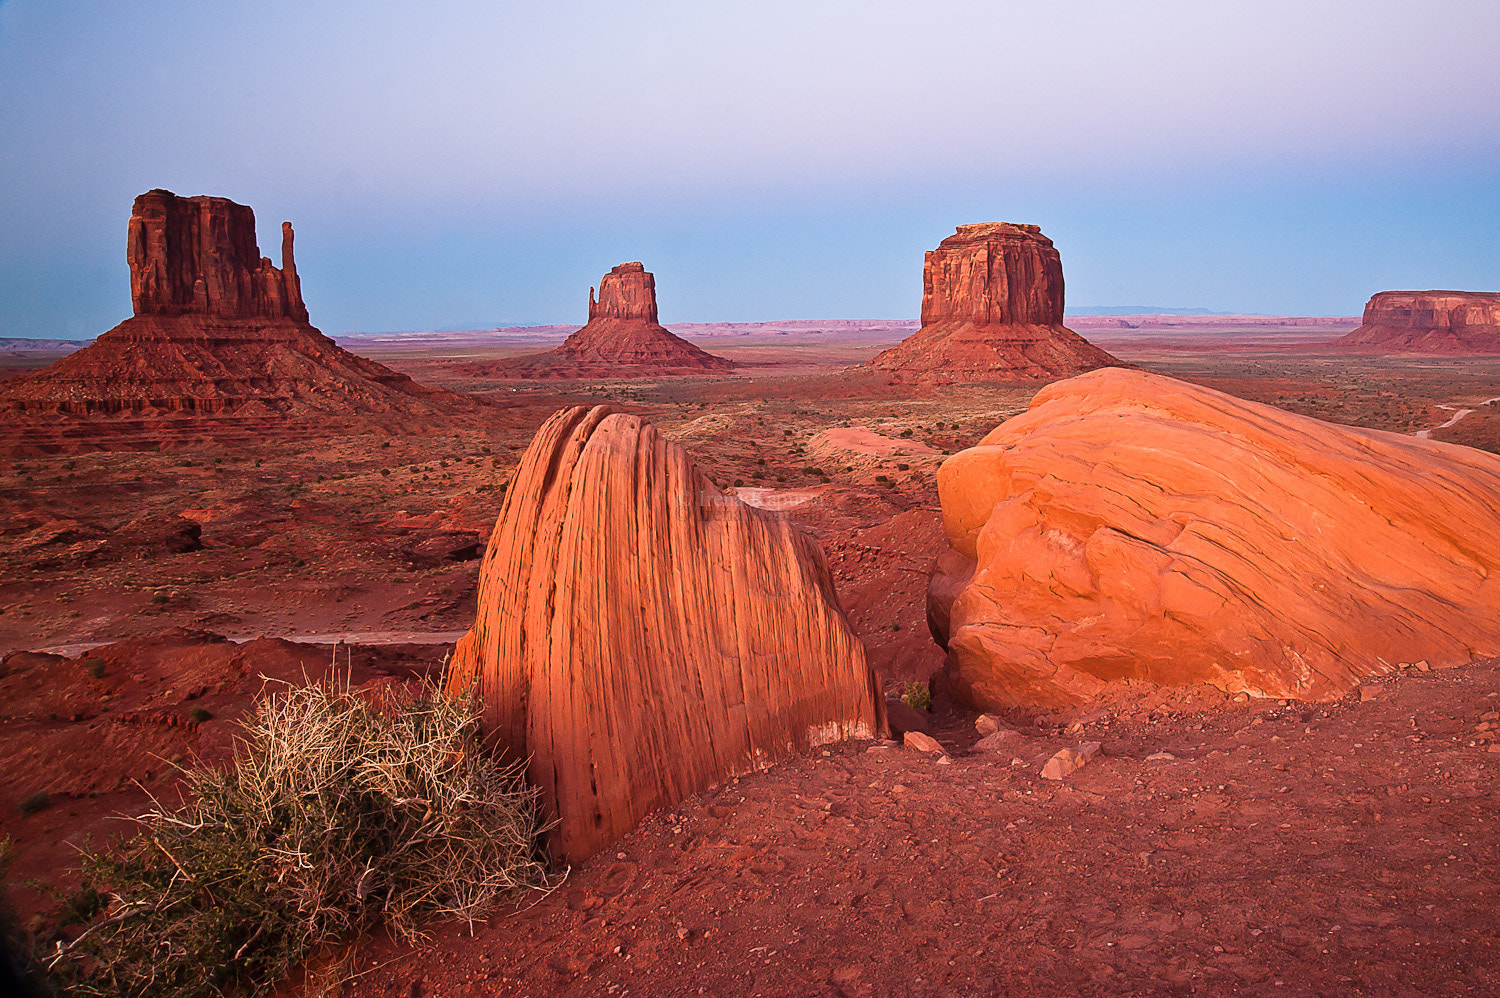 Photograph Monument Valley 2 of 2 by Irena  Kapusta on 500px